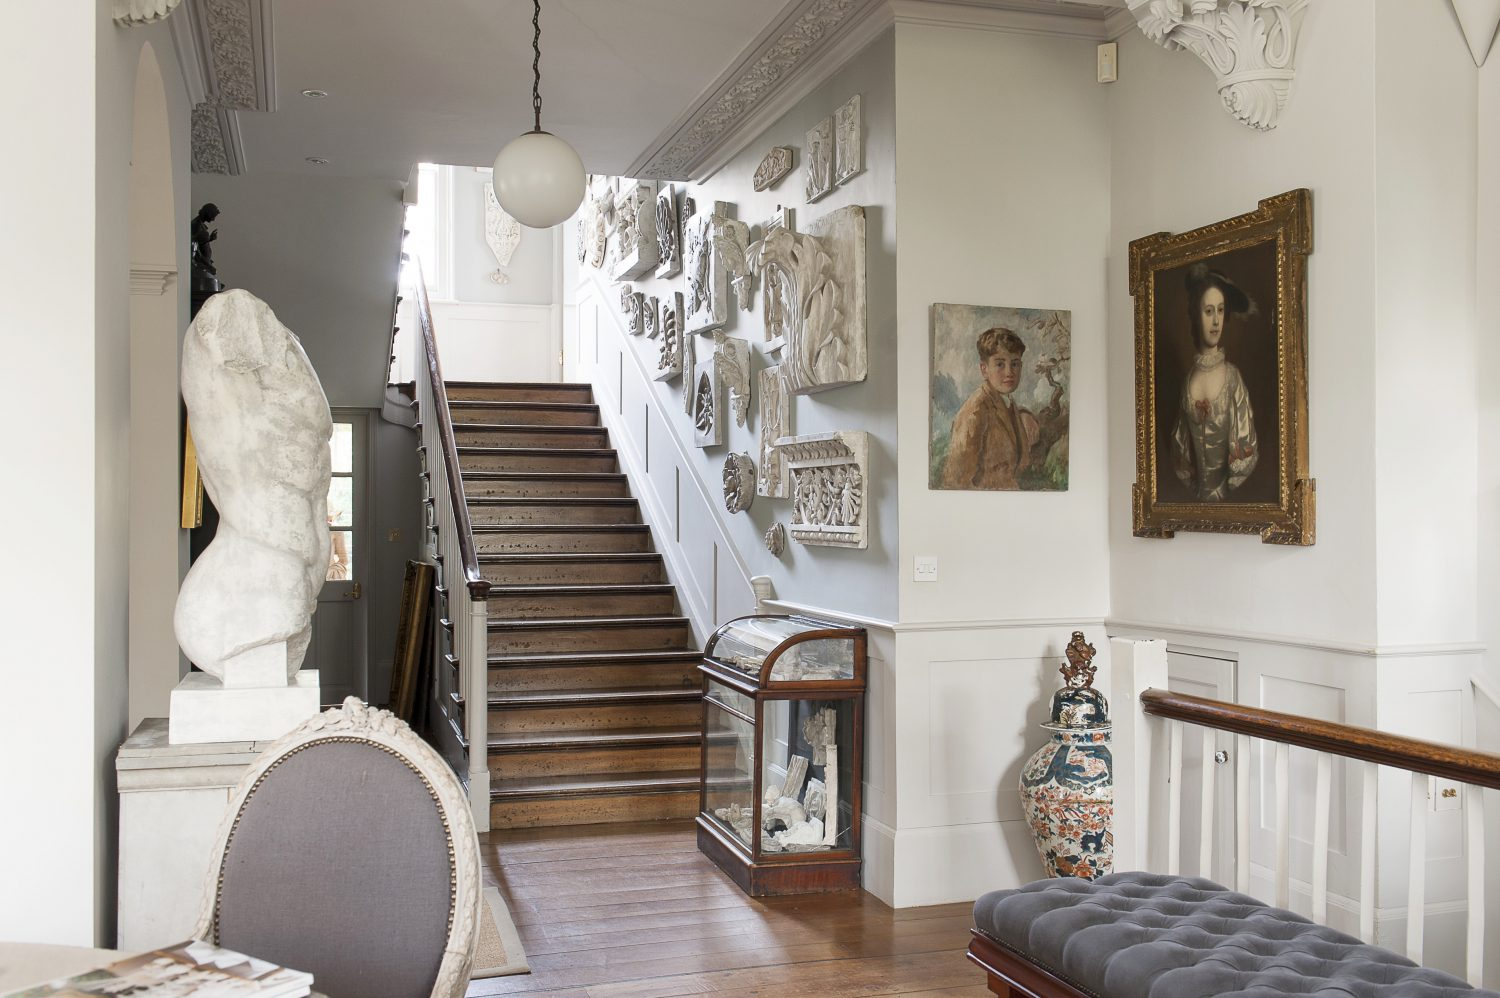 Ornate plasterwork, as well as being dotted around the house, dominates the stairwell and landing area at the heart of the house